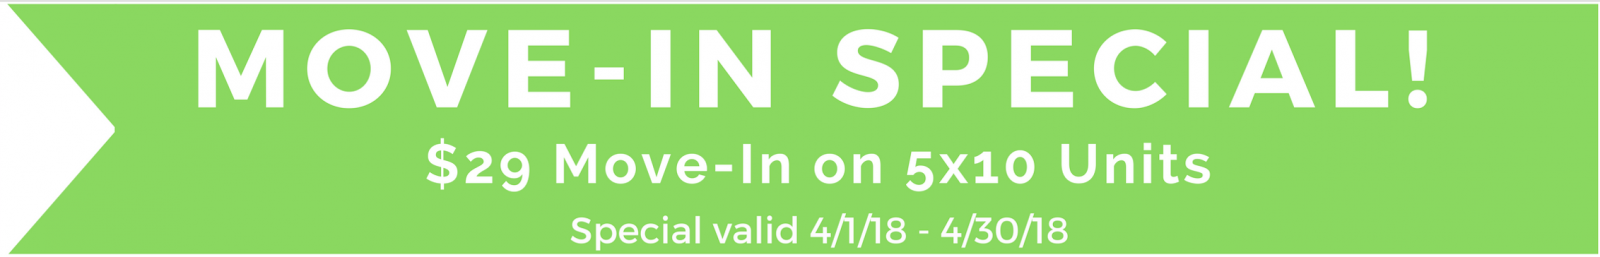 April $29 Move In Special on 5x10 Units